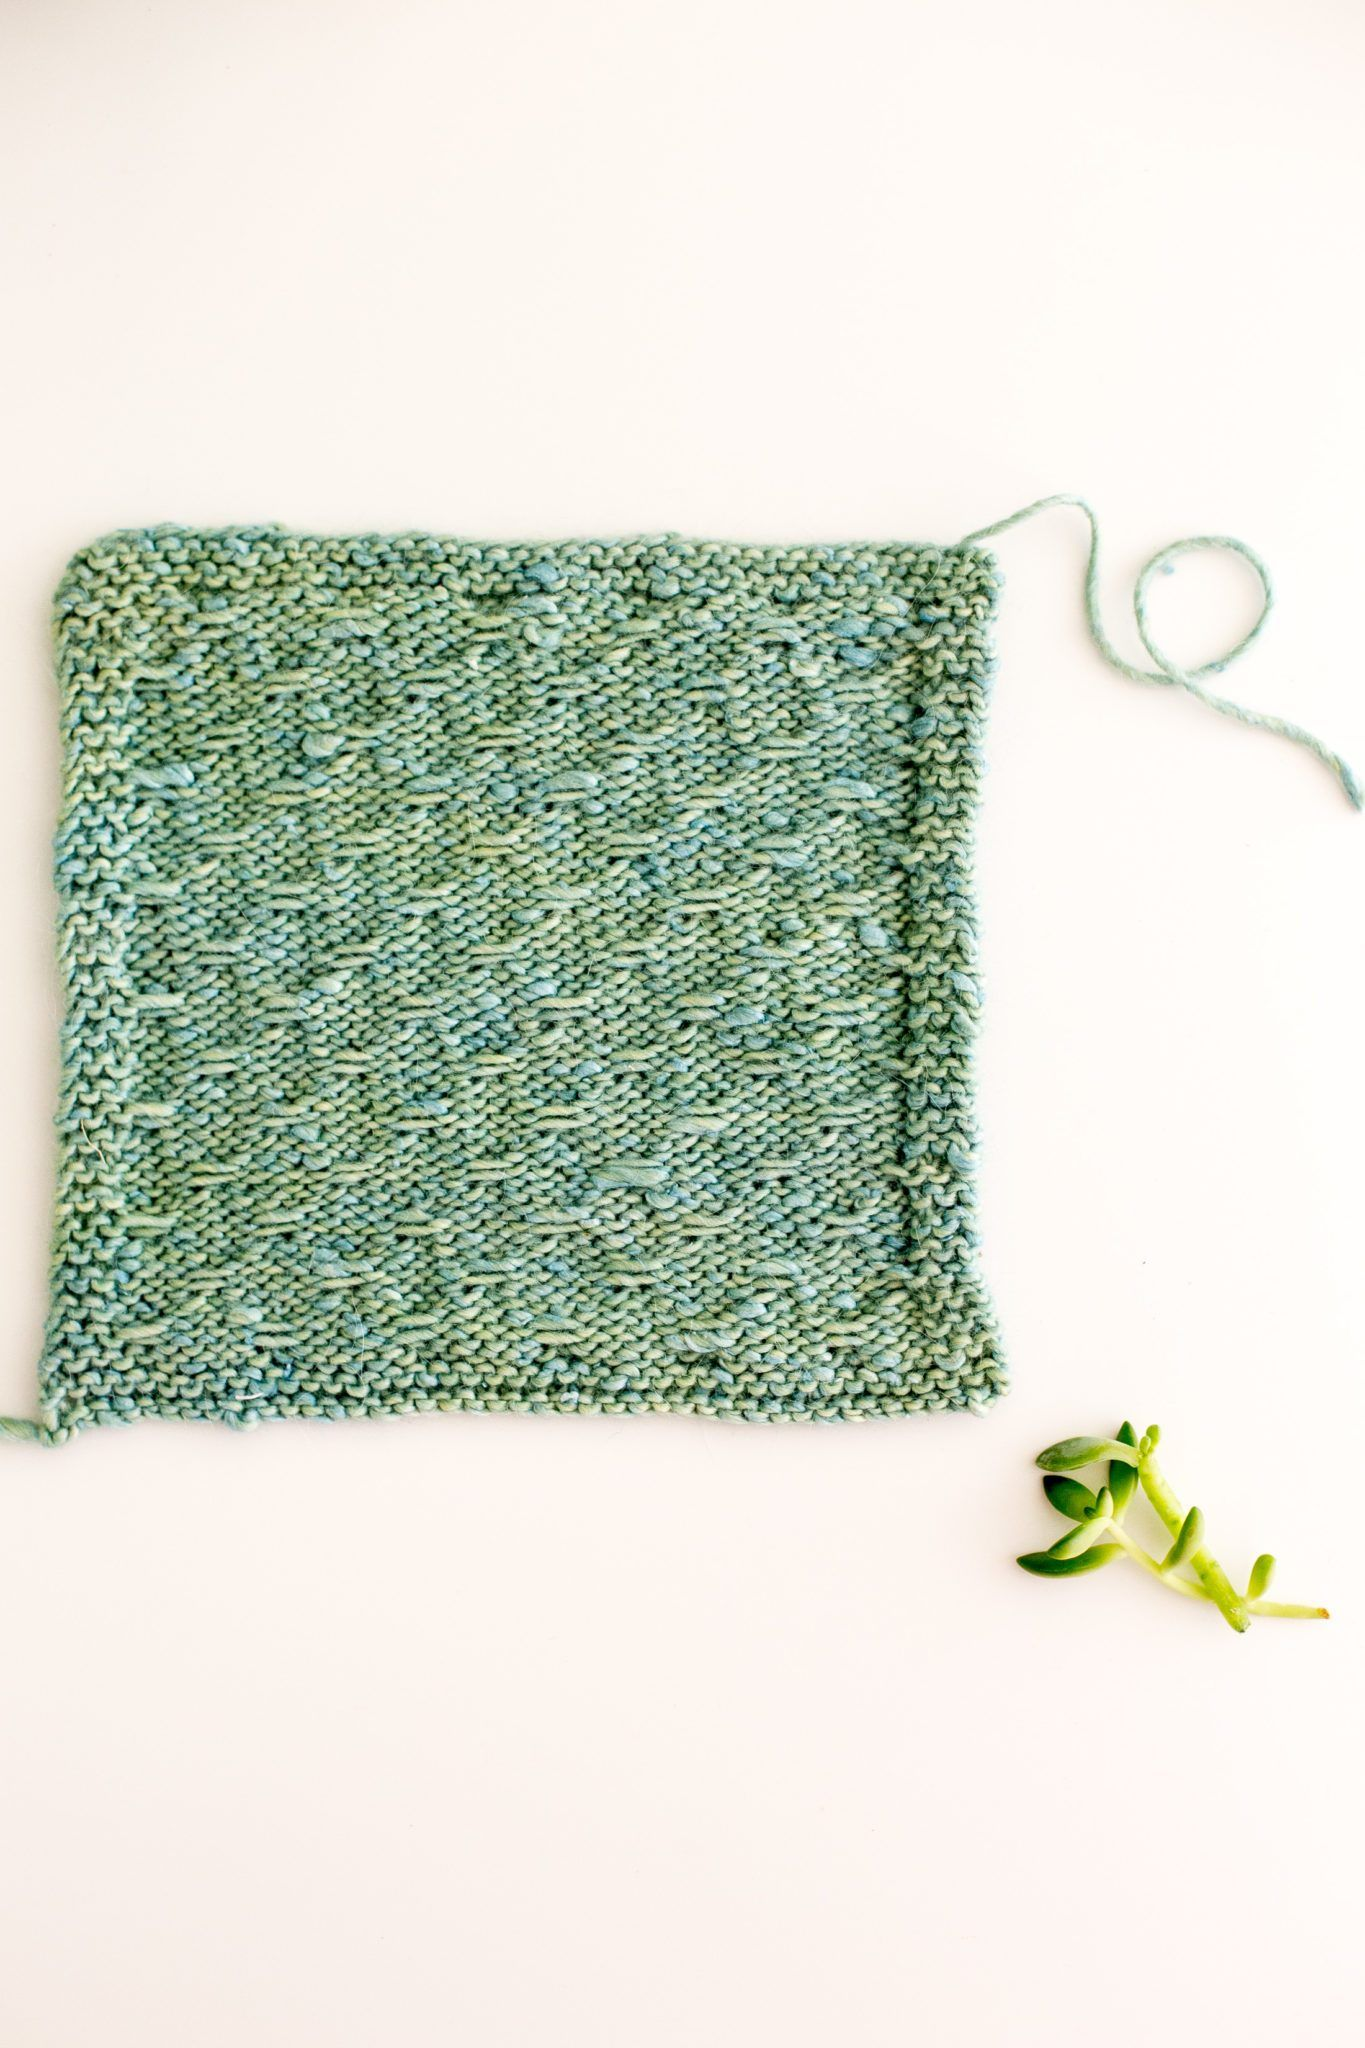 Slip Stitch Knitting Pattern How To: Trellis Double Slip Stitch #slipstitch